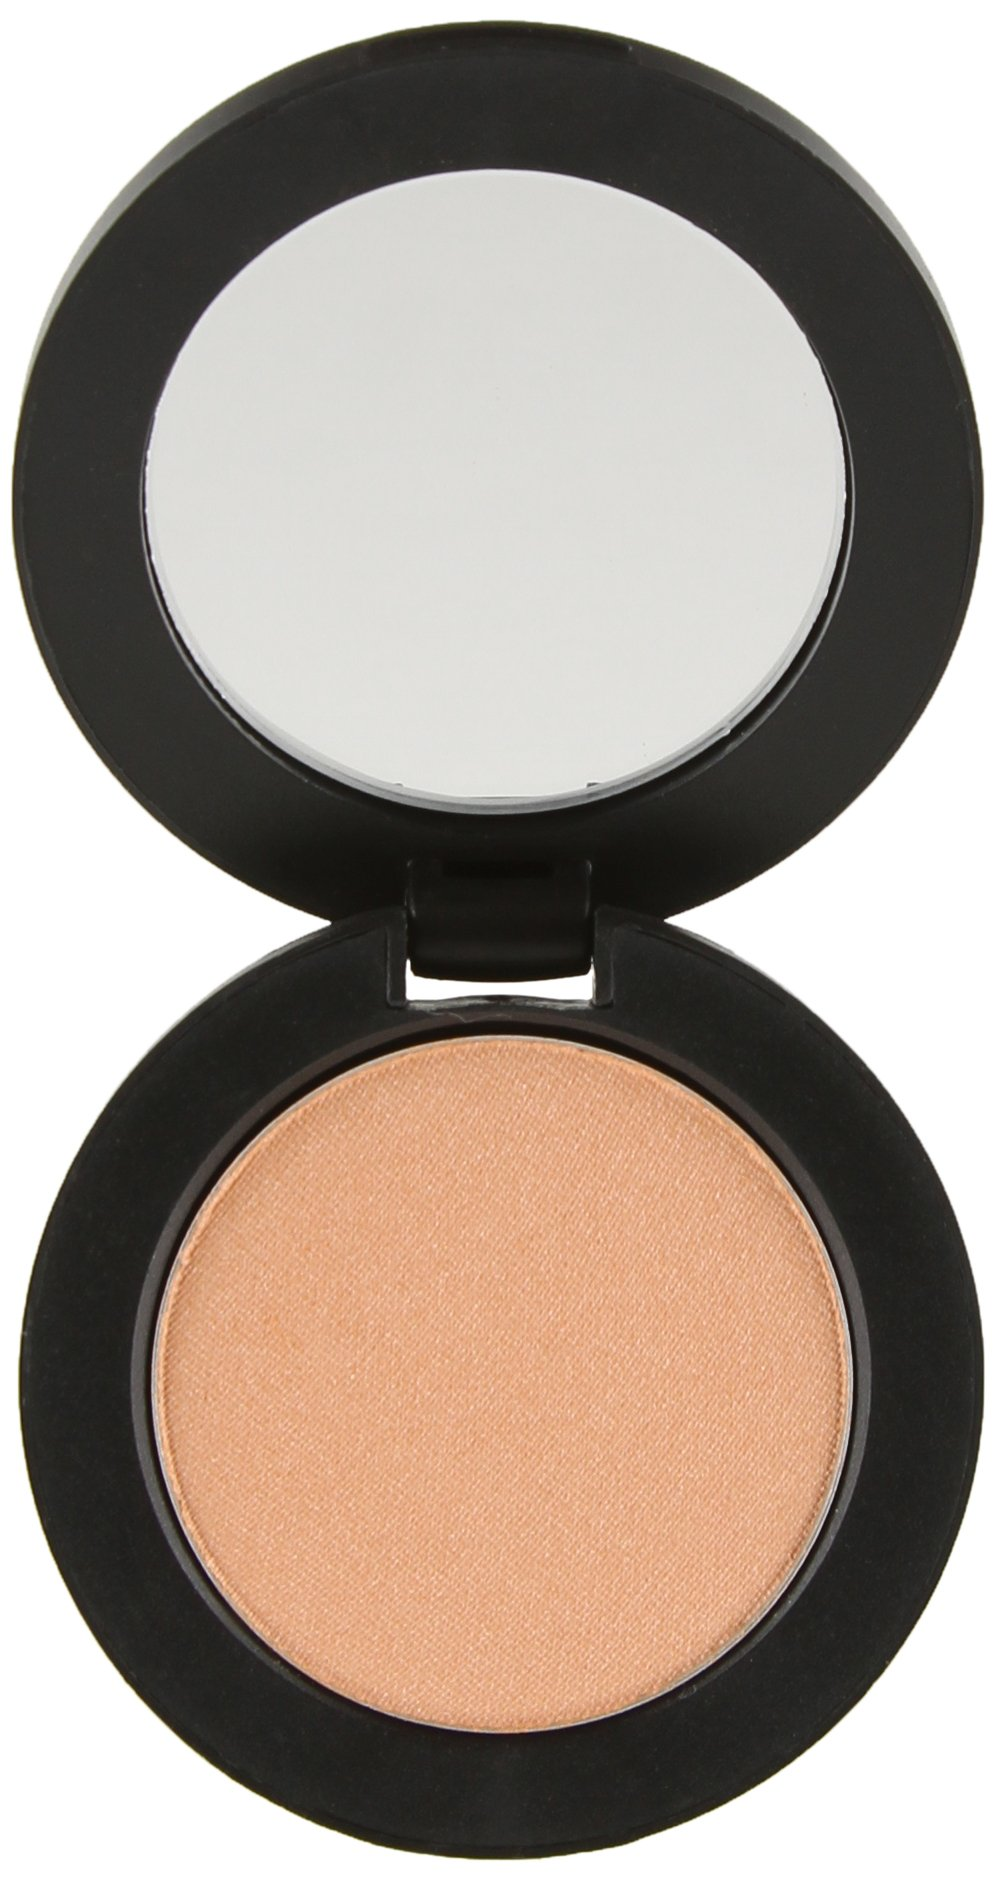 Youngblood Pressed Mineral Blush, Nectar, 3 Gram